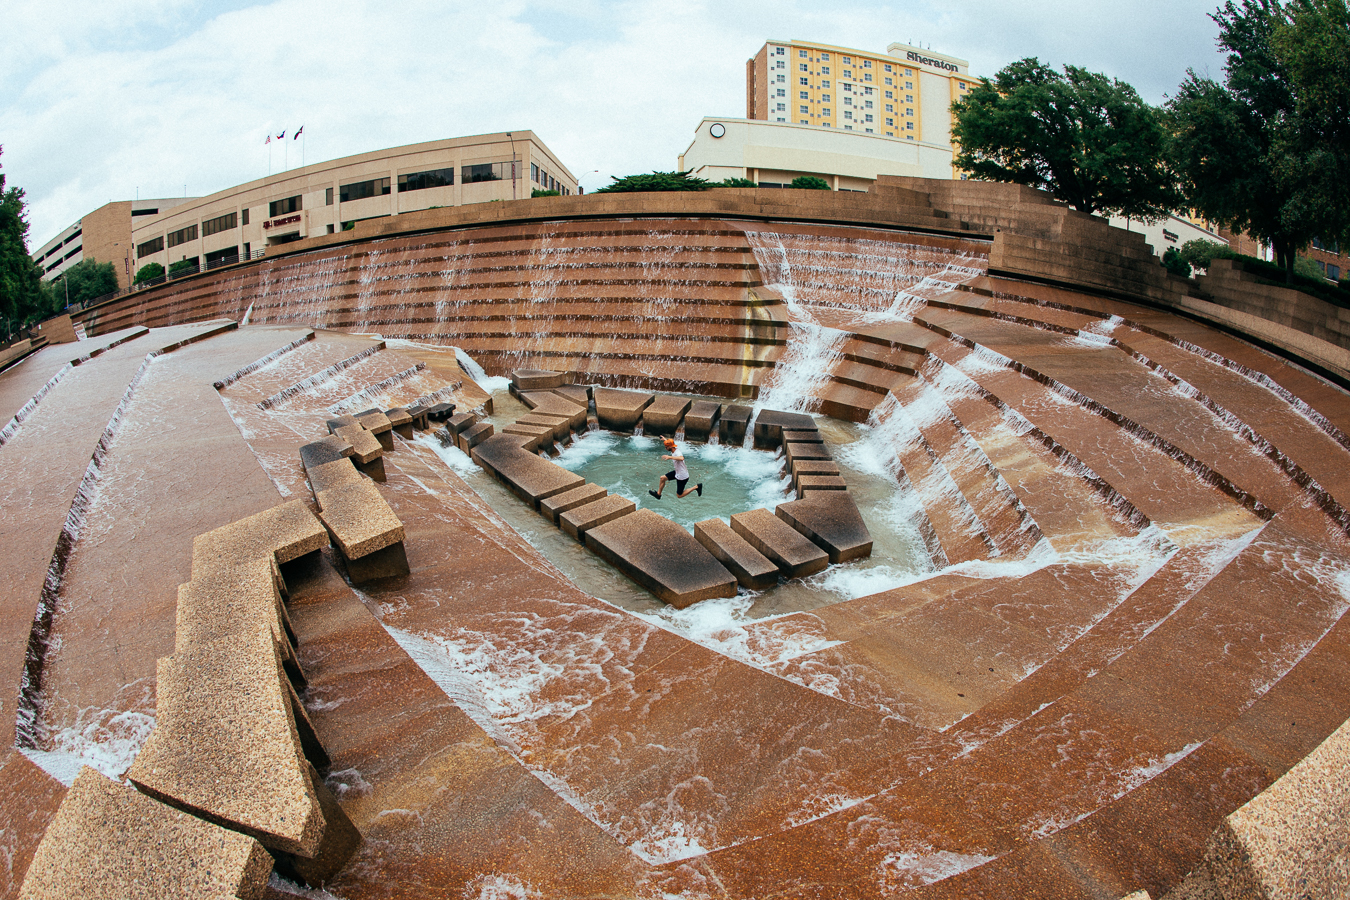 It was getting hot, so I rolled over to the Fort Worth Water Gardens. This place is so cool!